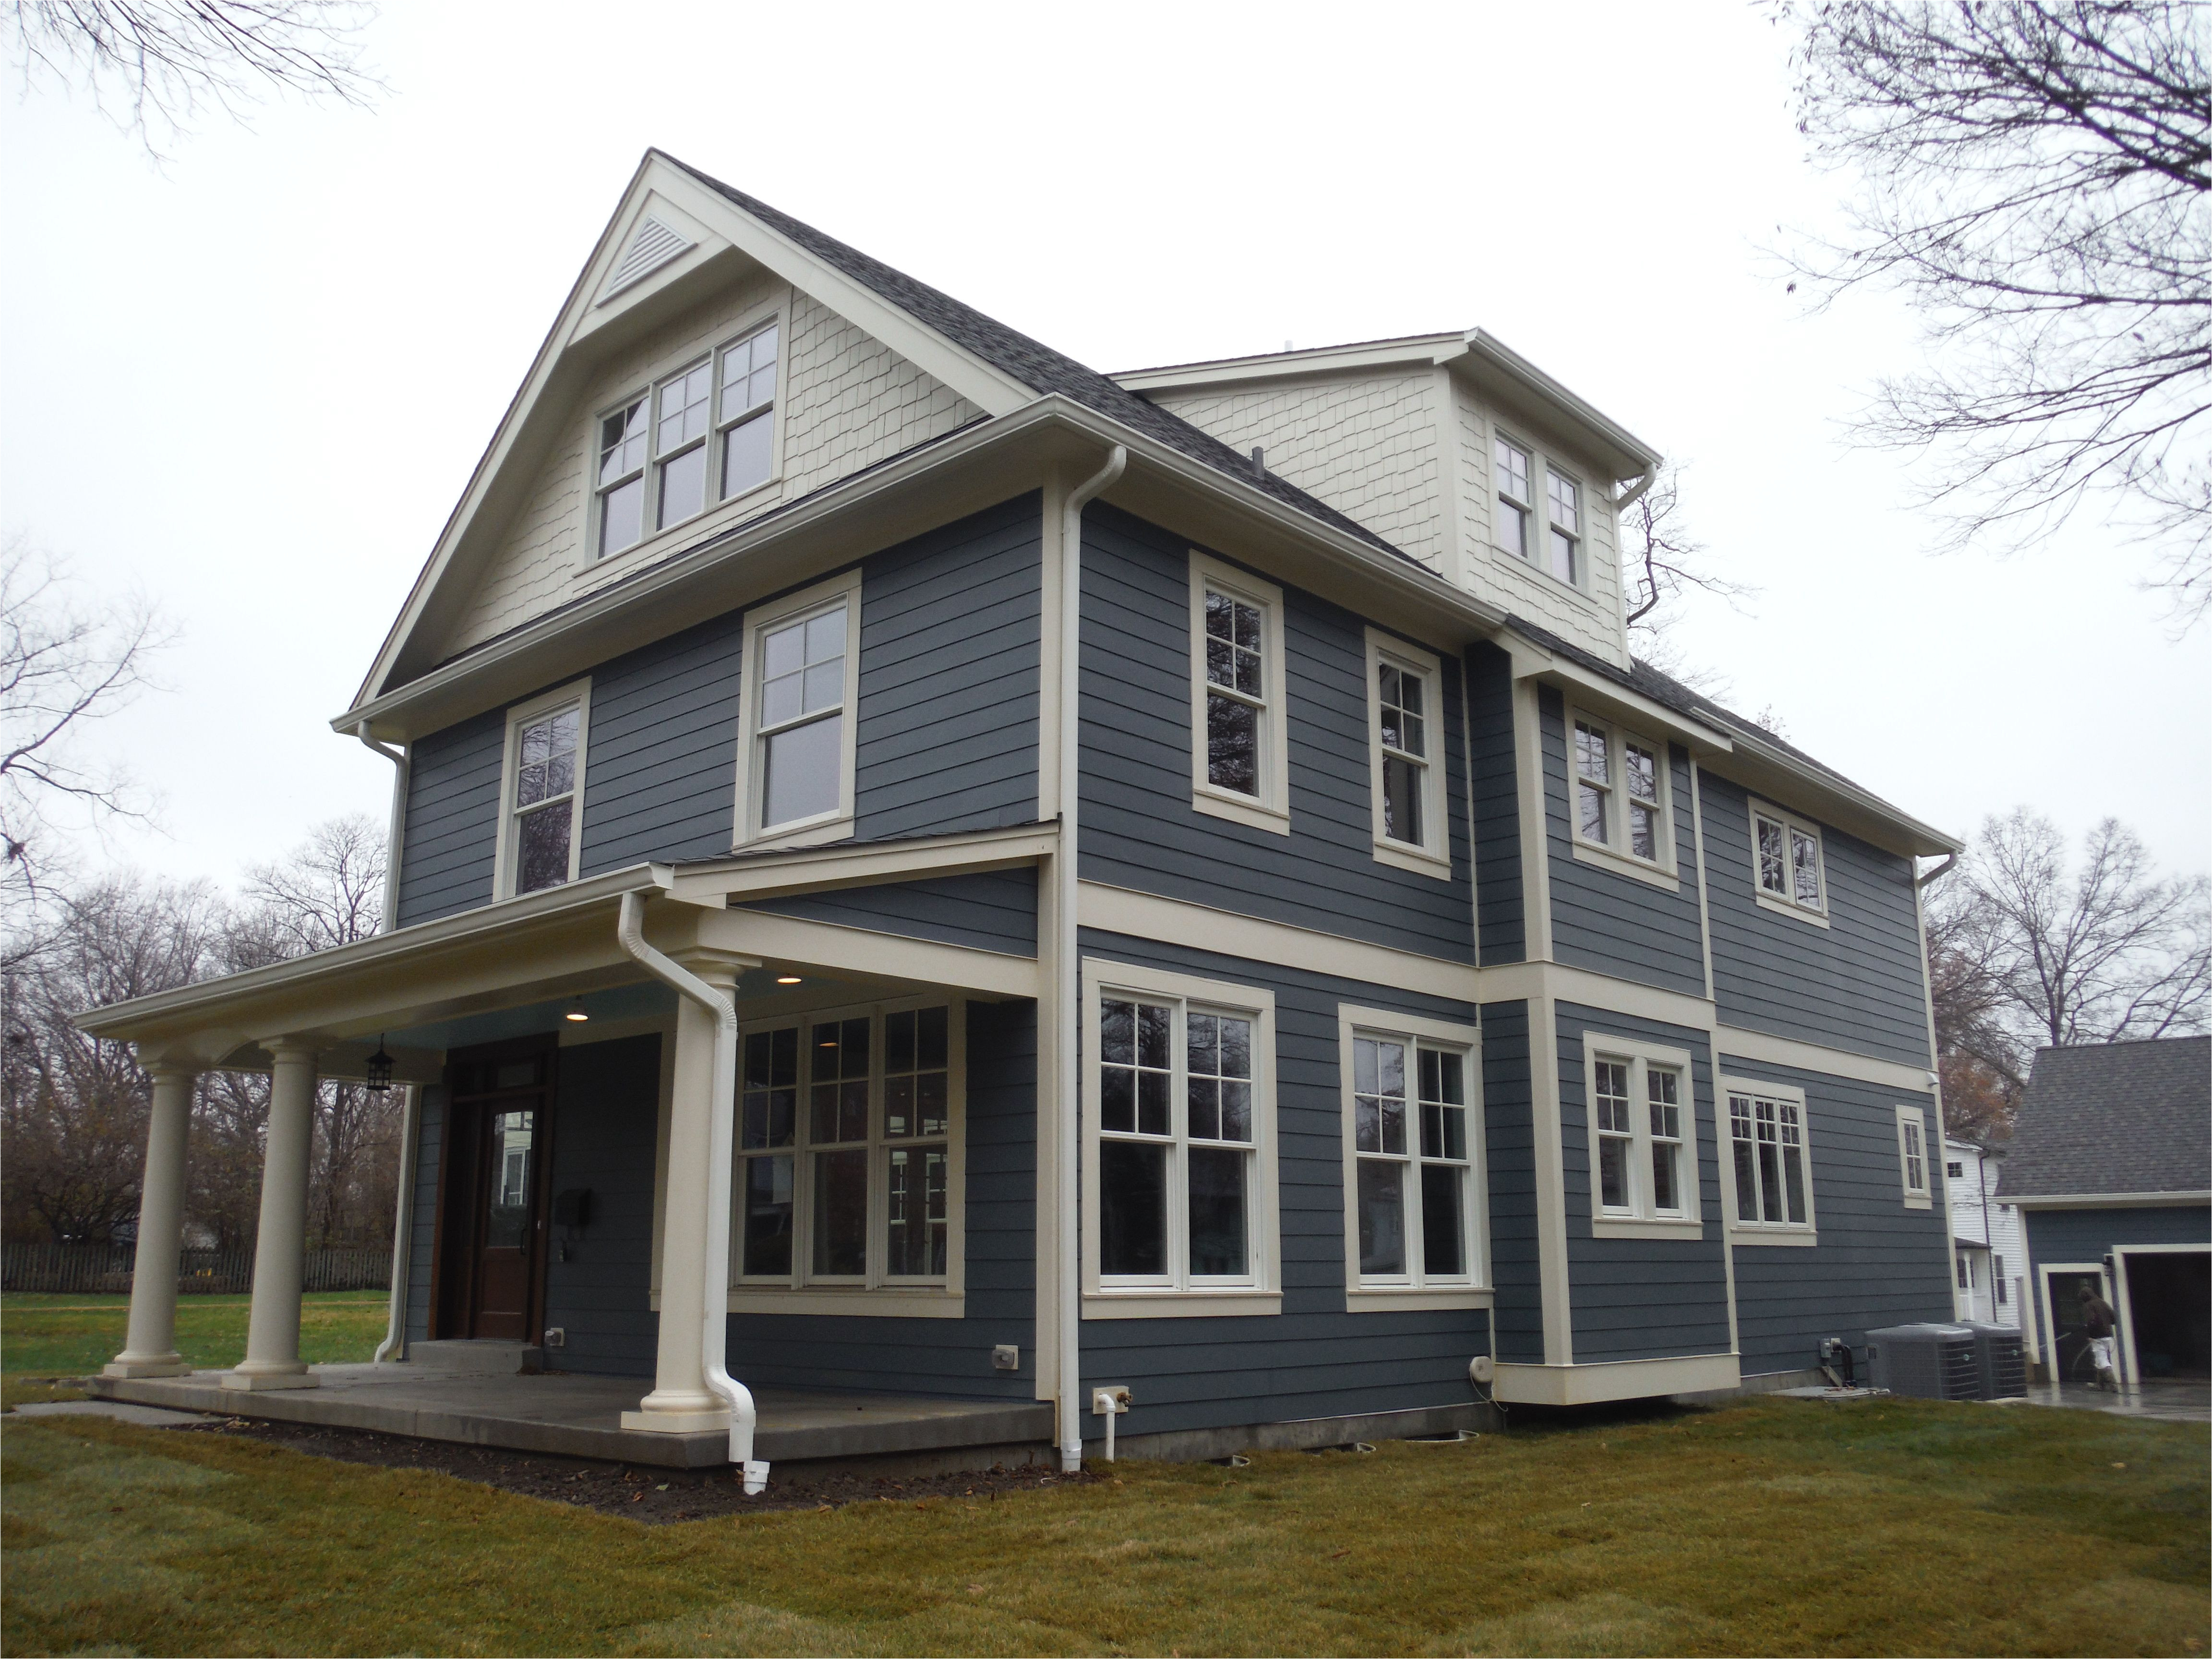 night gray james hardie lovely picture of the house with har lap siding evening blue horizontal of night gray james hardie jpg